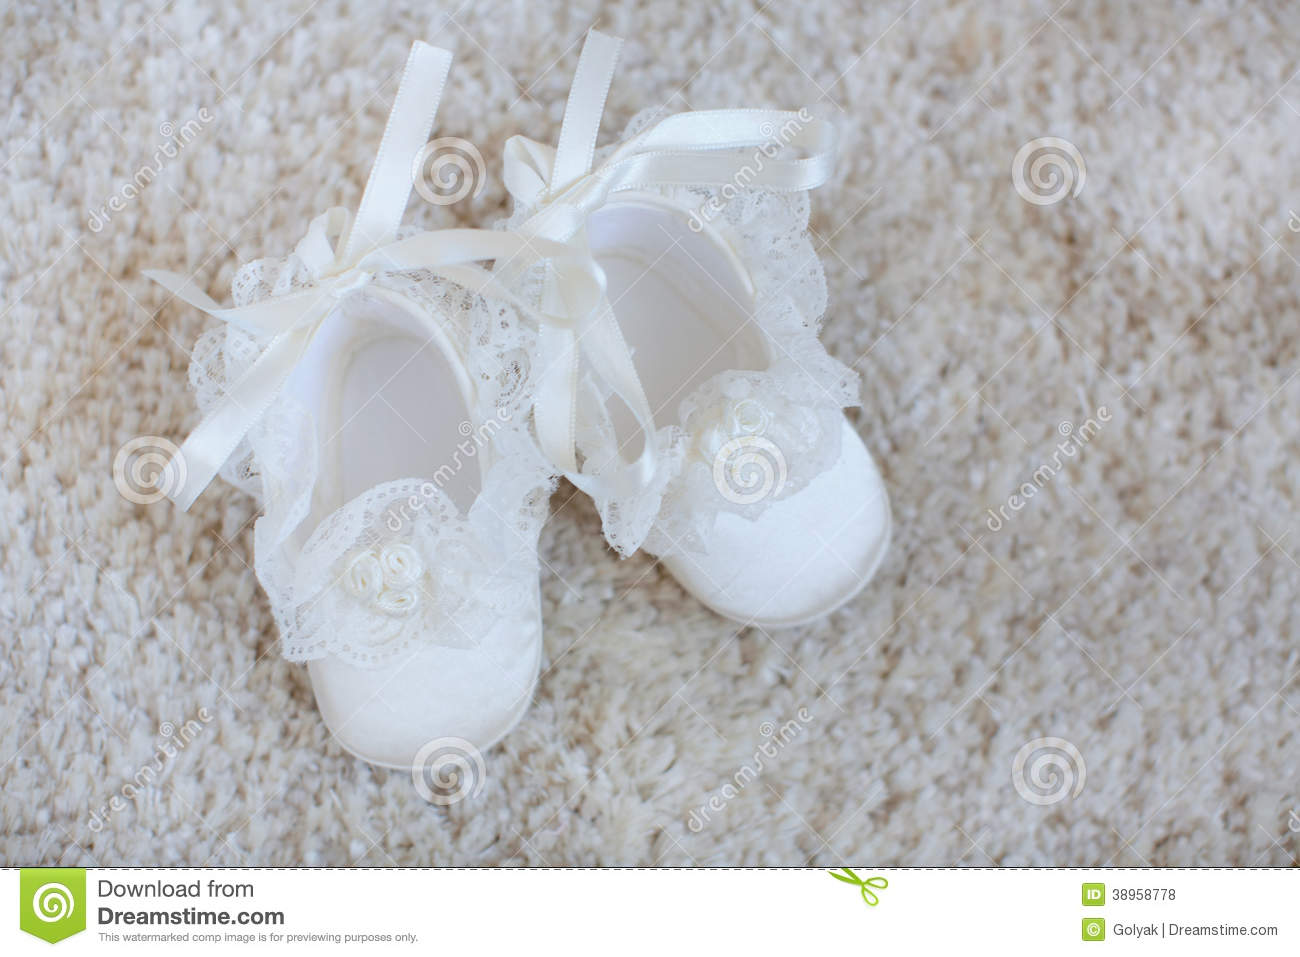 56ae895af4cb5 Baby Booties On White Lace. Stock Photo - Image of clothing, female ...